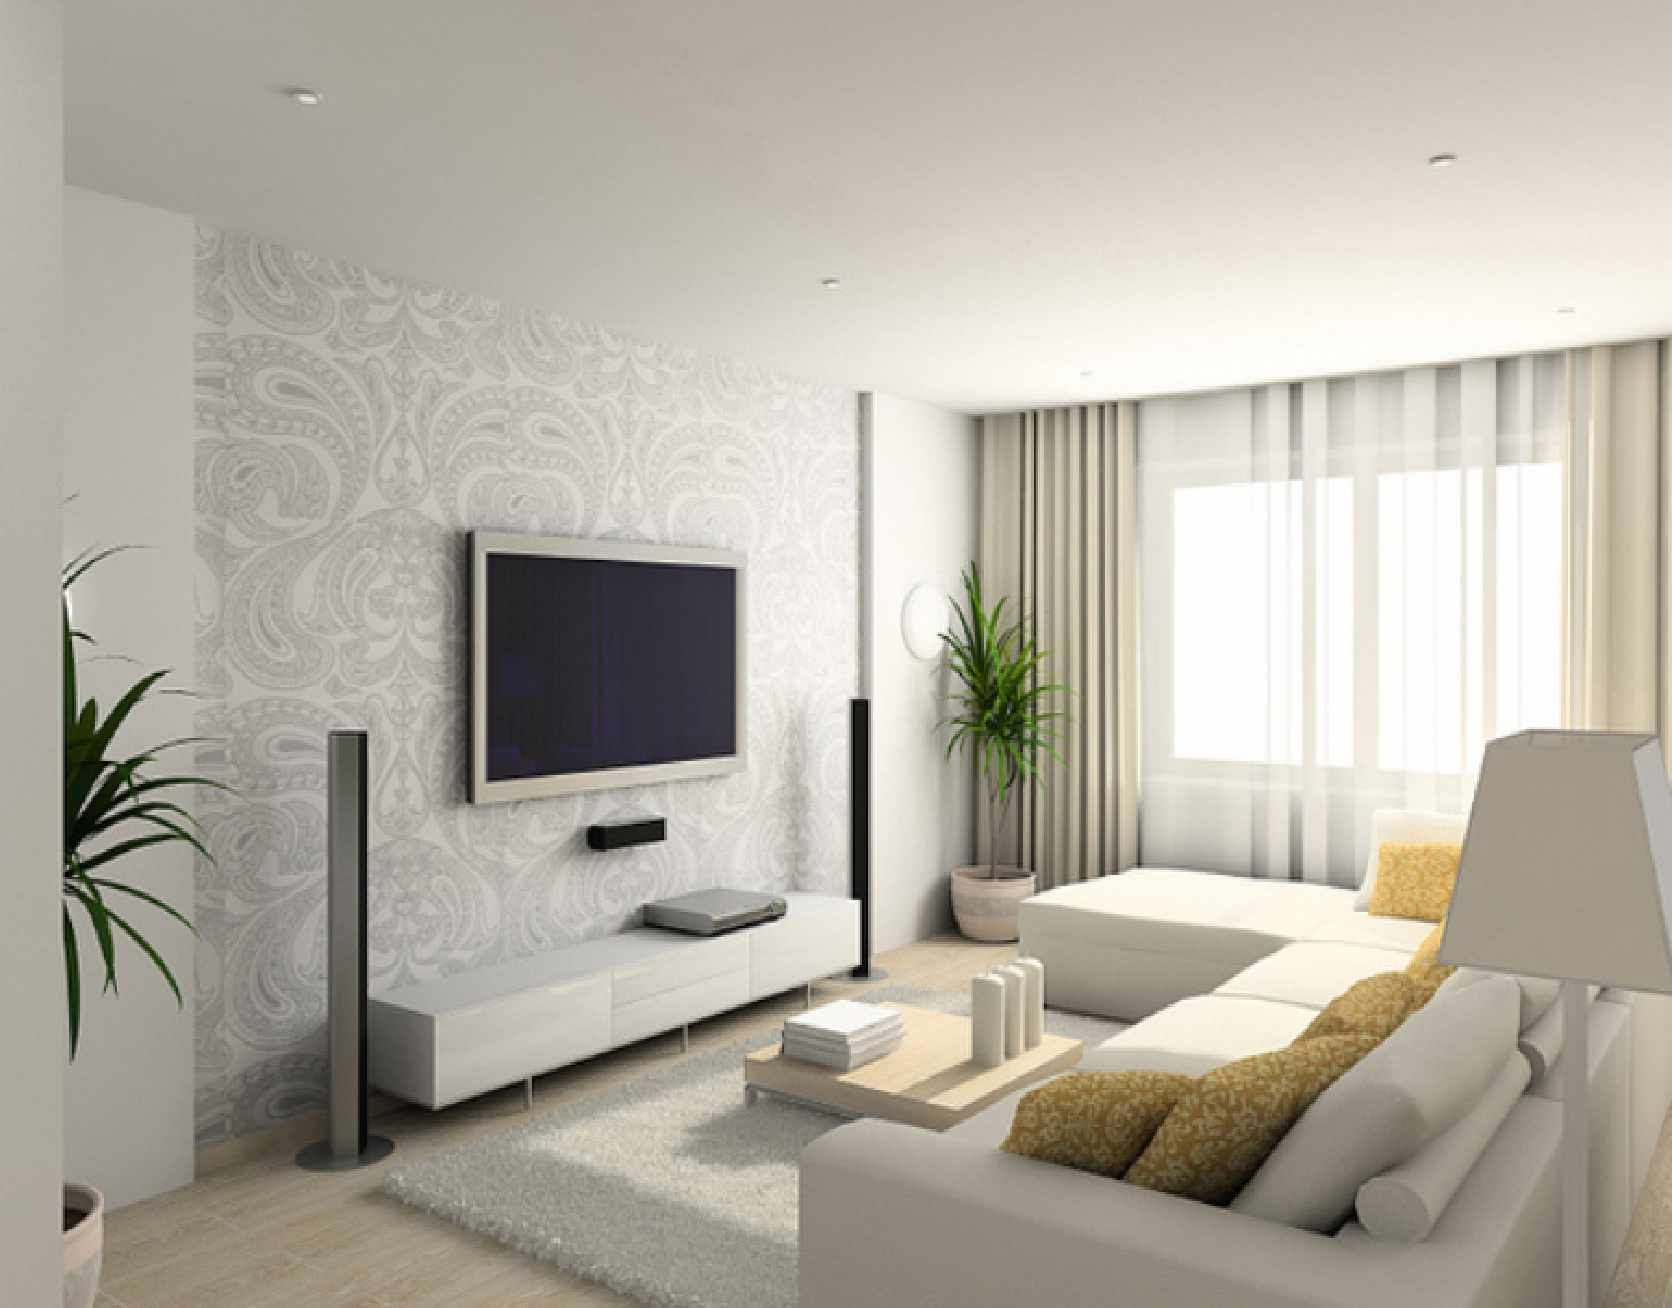 Modern Living Room Wallpaper Ideas 25 heavenly white interior designs | wall painting colors, living